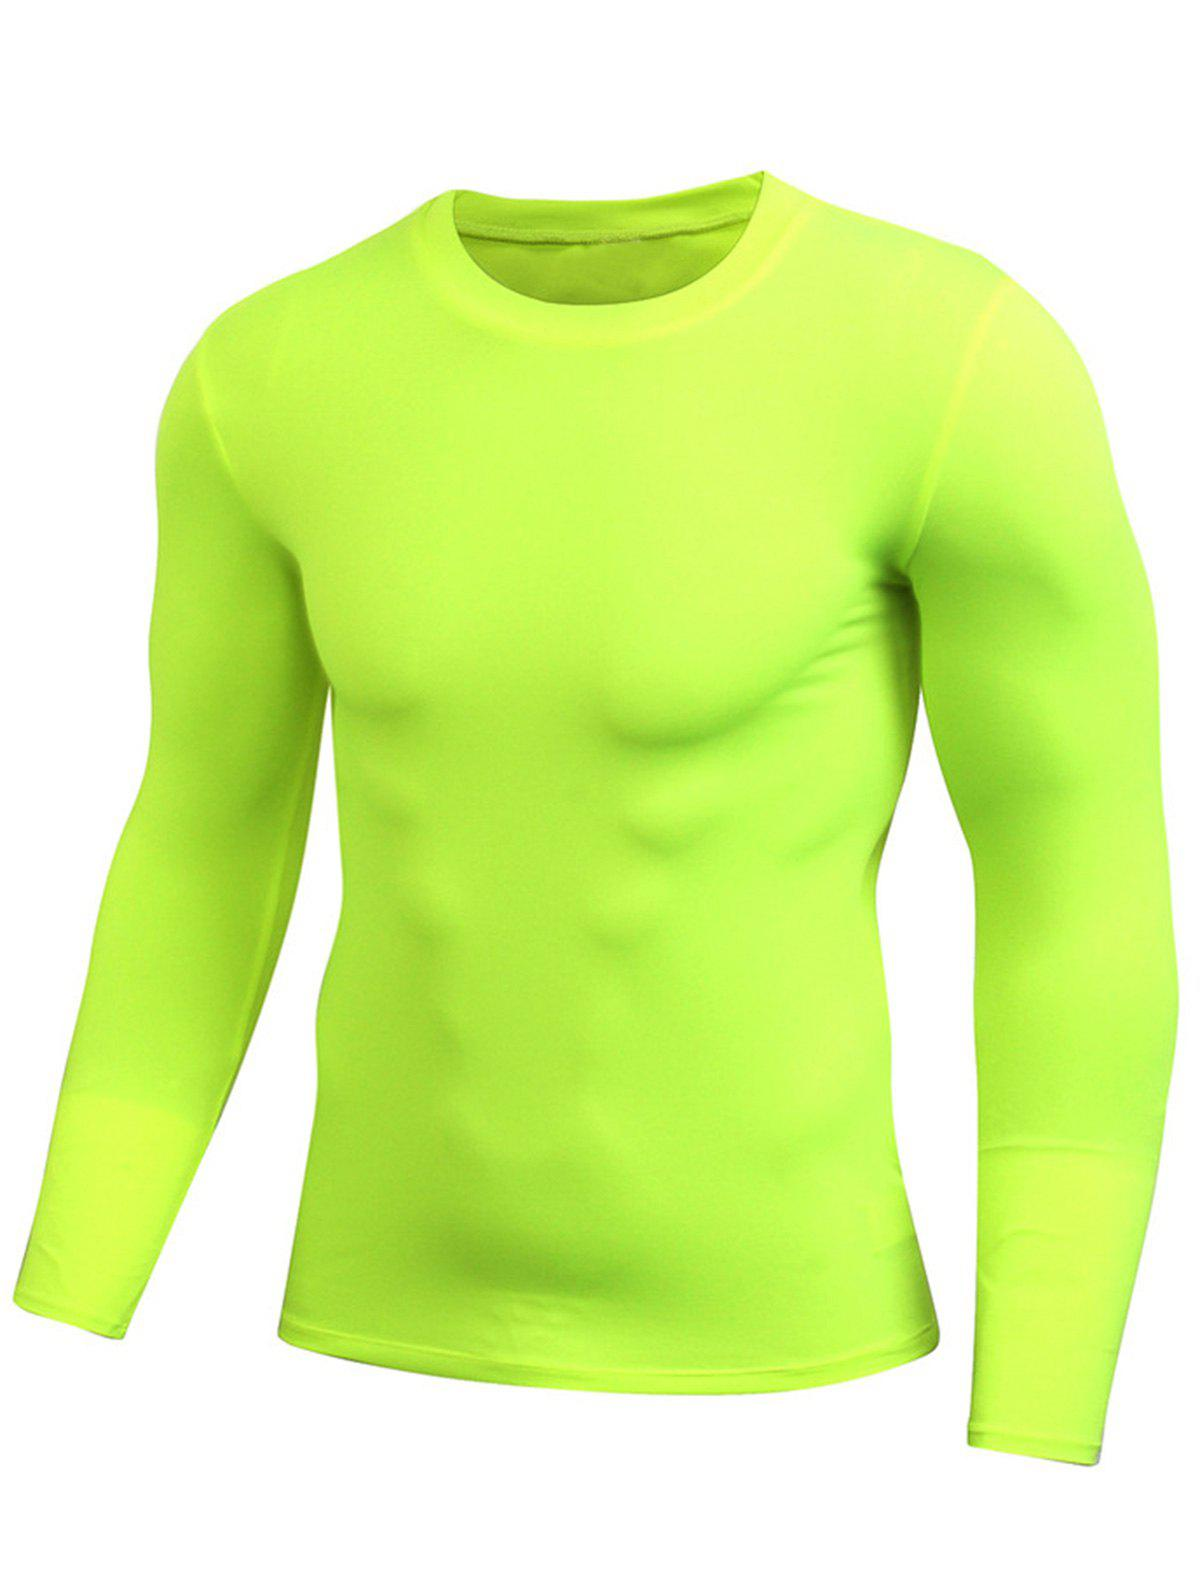 Discount Quick Dry Fitted Gym Long Sleeve T-shirt